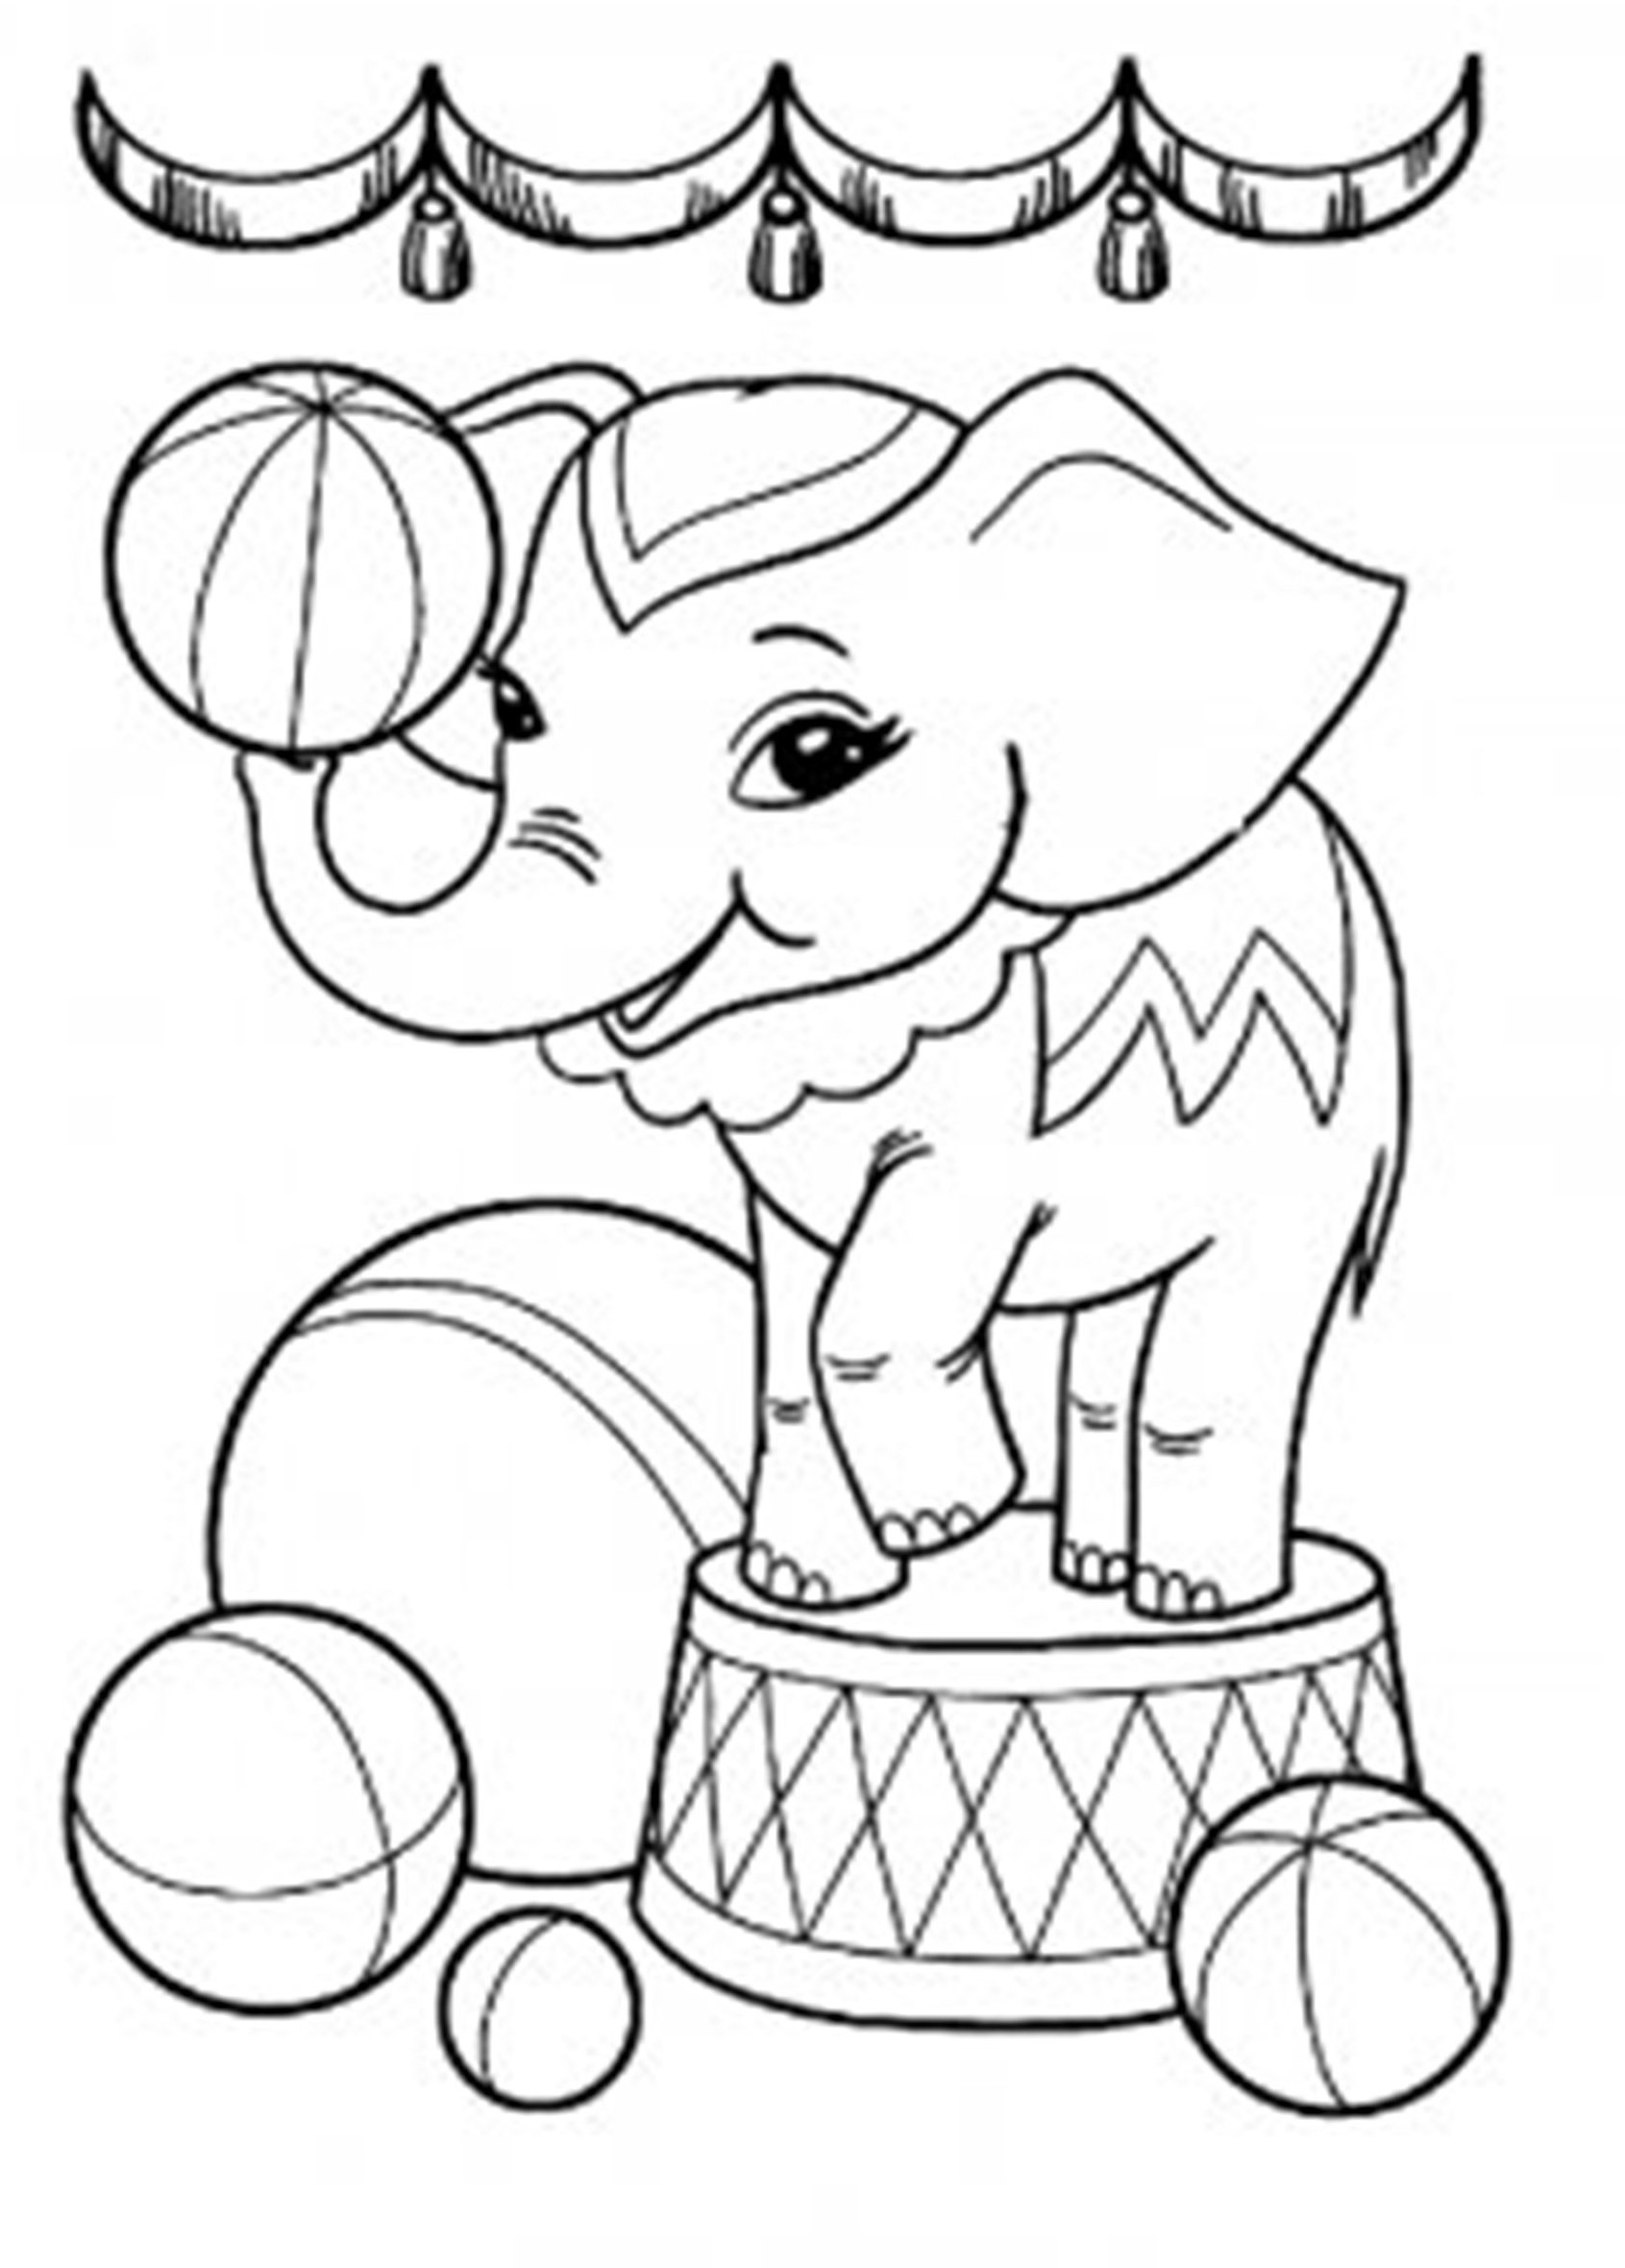 coloring page for kids zebra coloring pages free printable kids coloring pages kids page coloring for